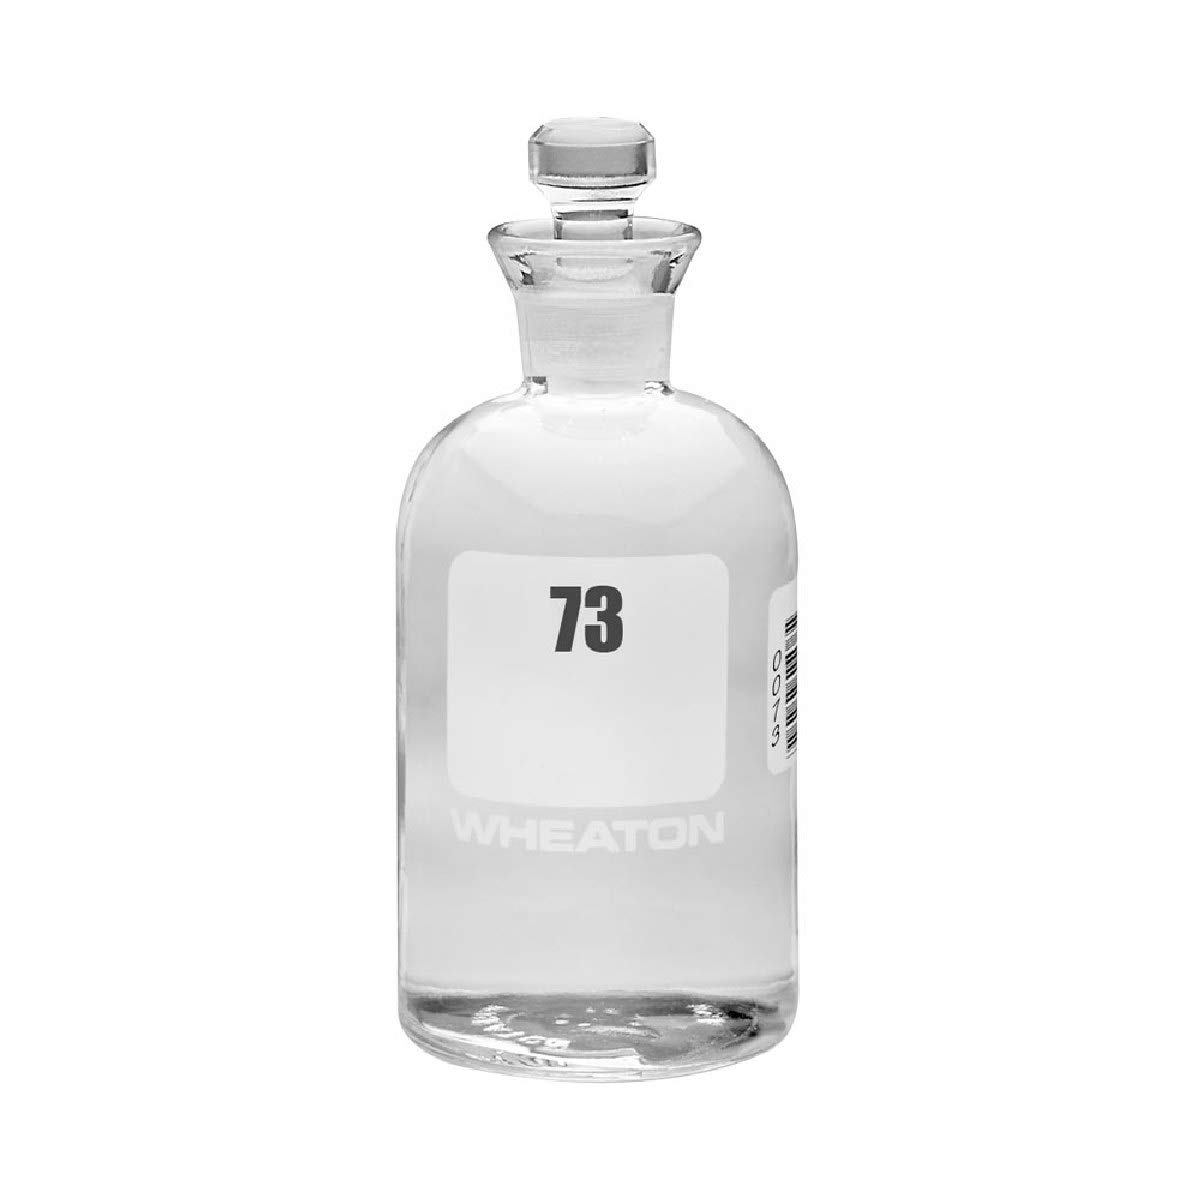 Wheaton 227497-04 Excellent BOD Bottle 300 mL Glass Max 86% OFF 73 to Numbered 96